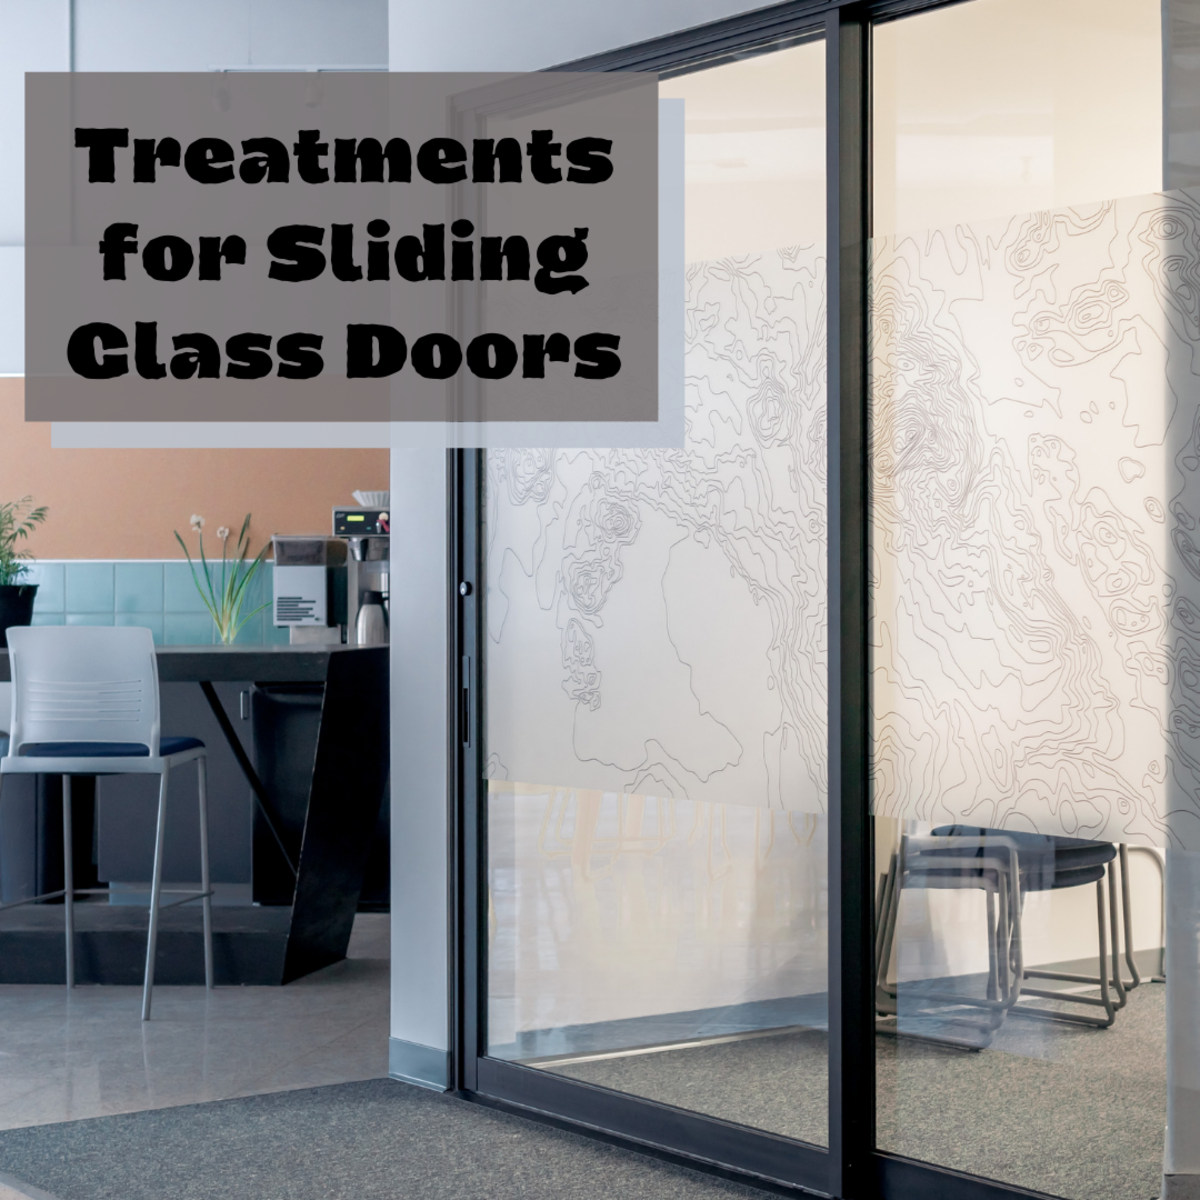 This article walks you through some of the ways you can treat your sliding glass doors